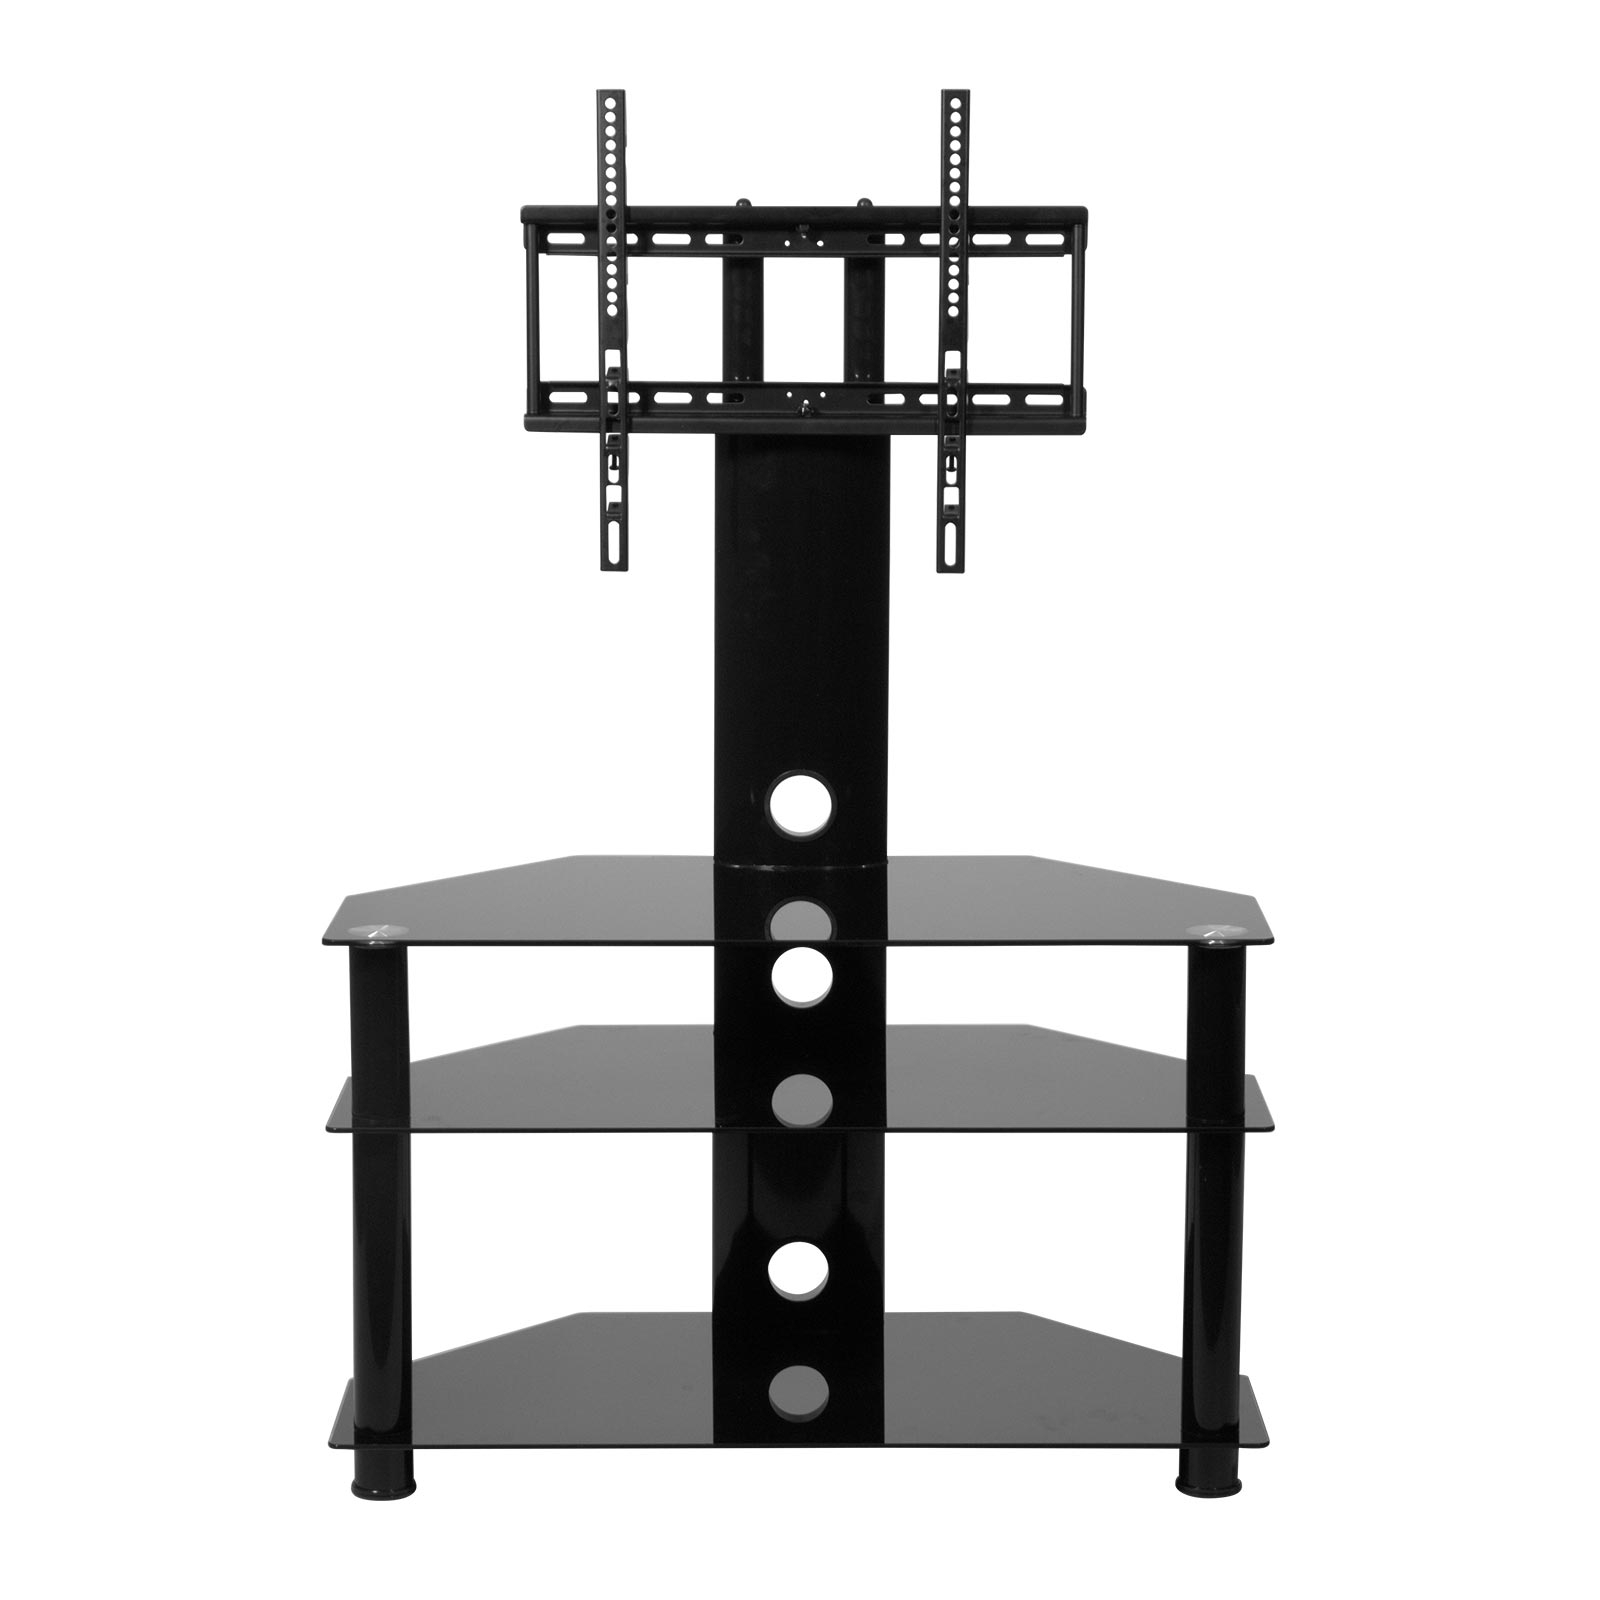 """Most Recent Mmt Rio Cb32 Cantilever Tv Stand For 32"""" 50"""" Screens – Tvbracketman In Cheap Cantilever Tv Stands (View 15 of 20)"""